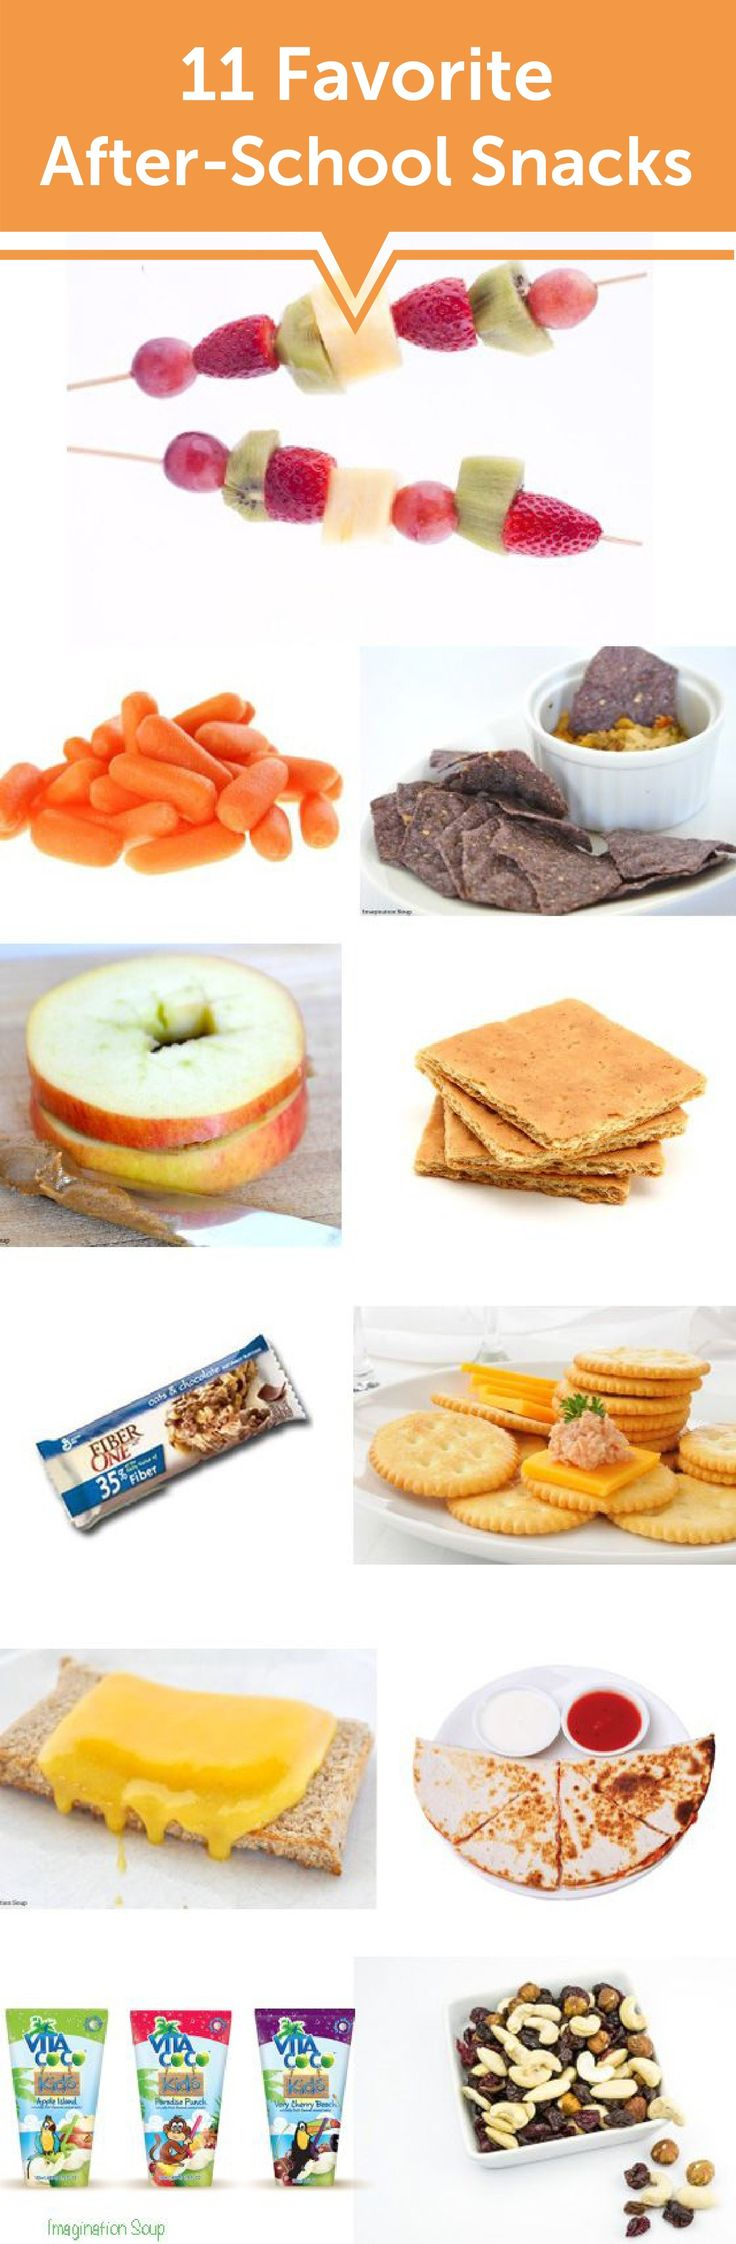 Crunched For Time And Looking A Snack Option That Includes Fresh Produce Better